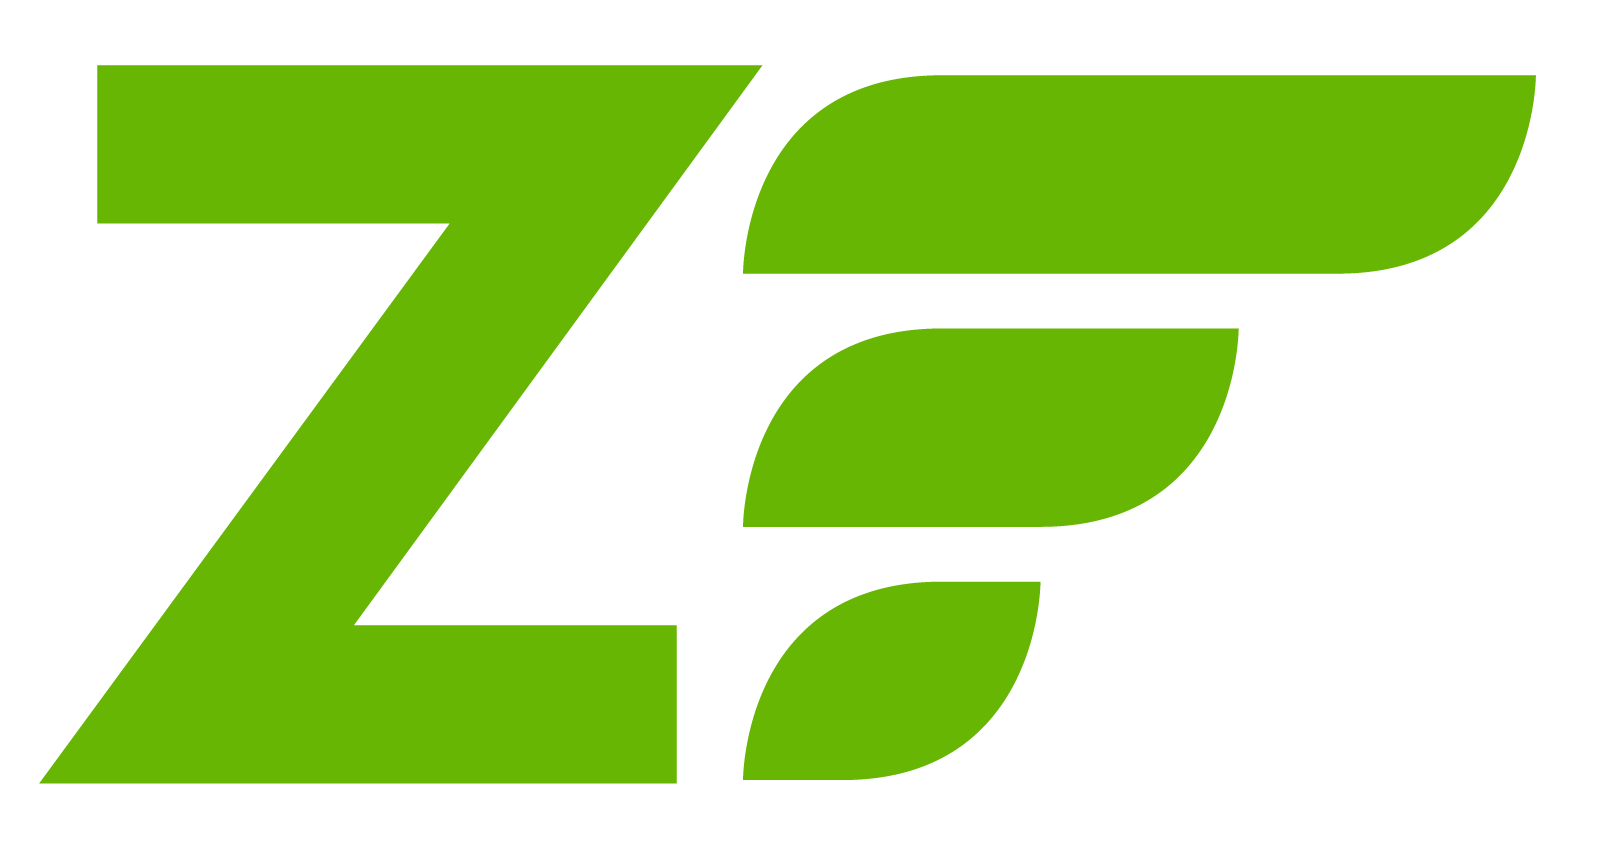 zf-logo-mark.png